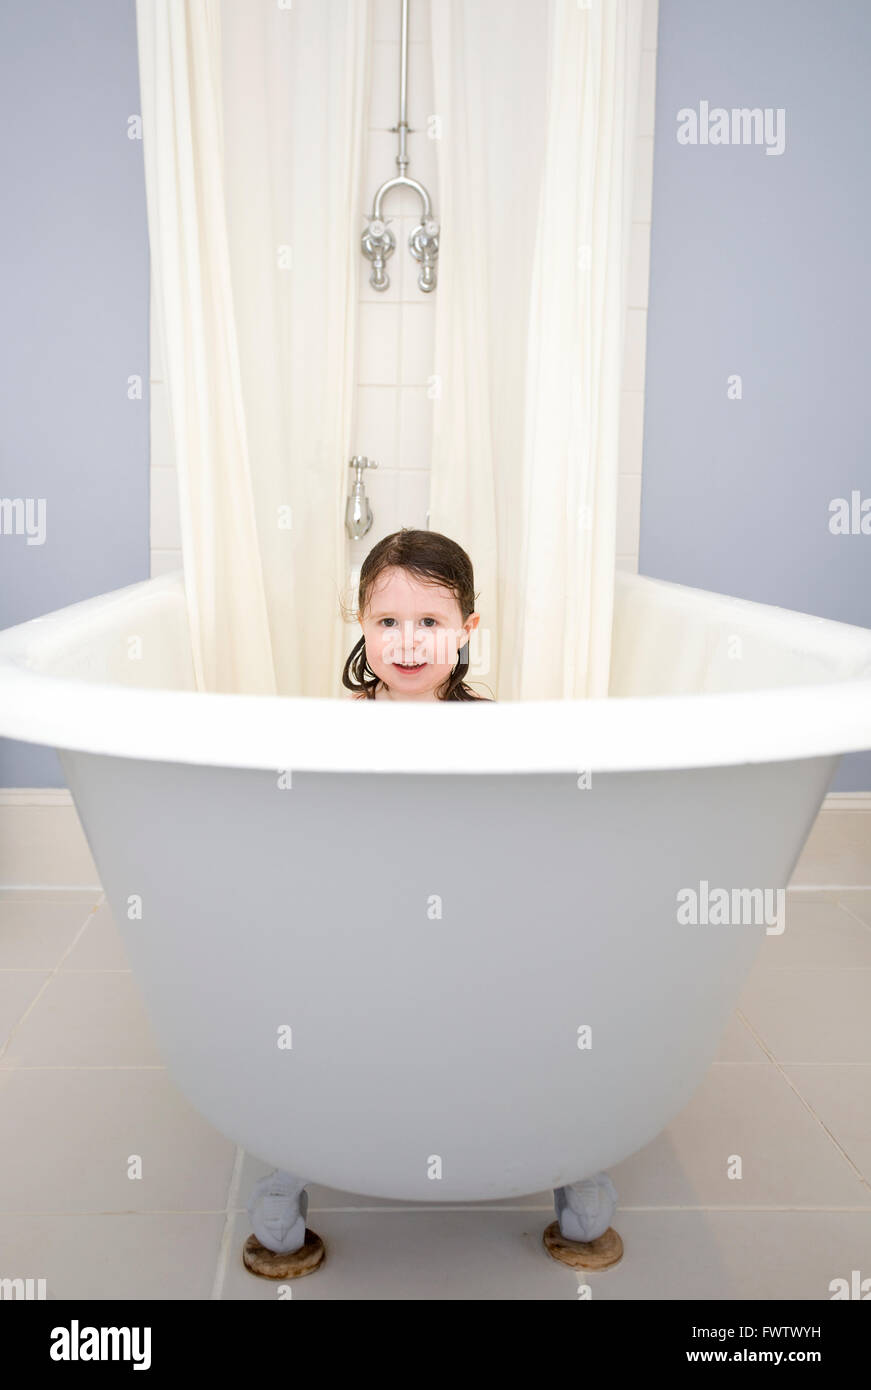 toddler sat in large cast iron bath tub Stock Photo: 101965461 - Alamy